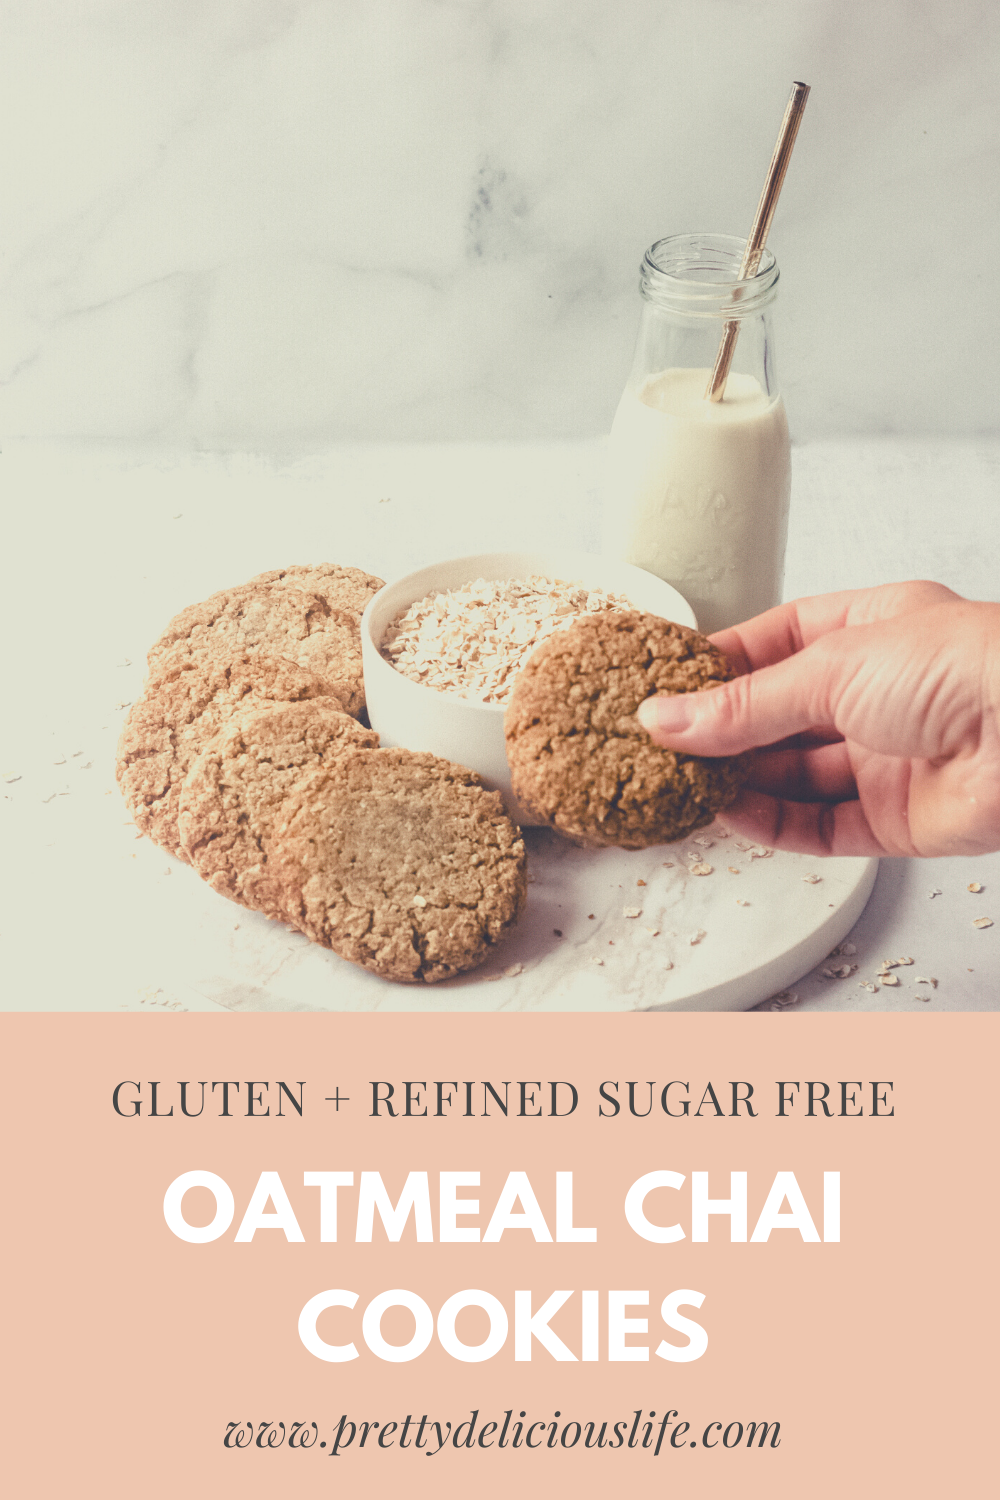 Made with oats and paleo flours, these gluten free oatmeal cookies are also low FODMAP diet friendly. Only 3g of sugar per cookie! #lowsugardessert #glutenfreedessert #lowfodmapdessert